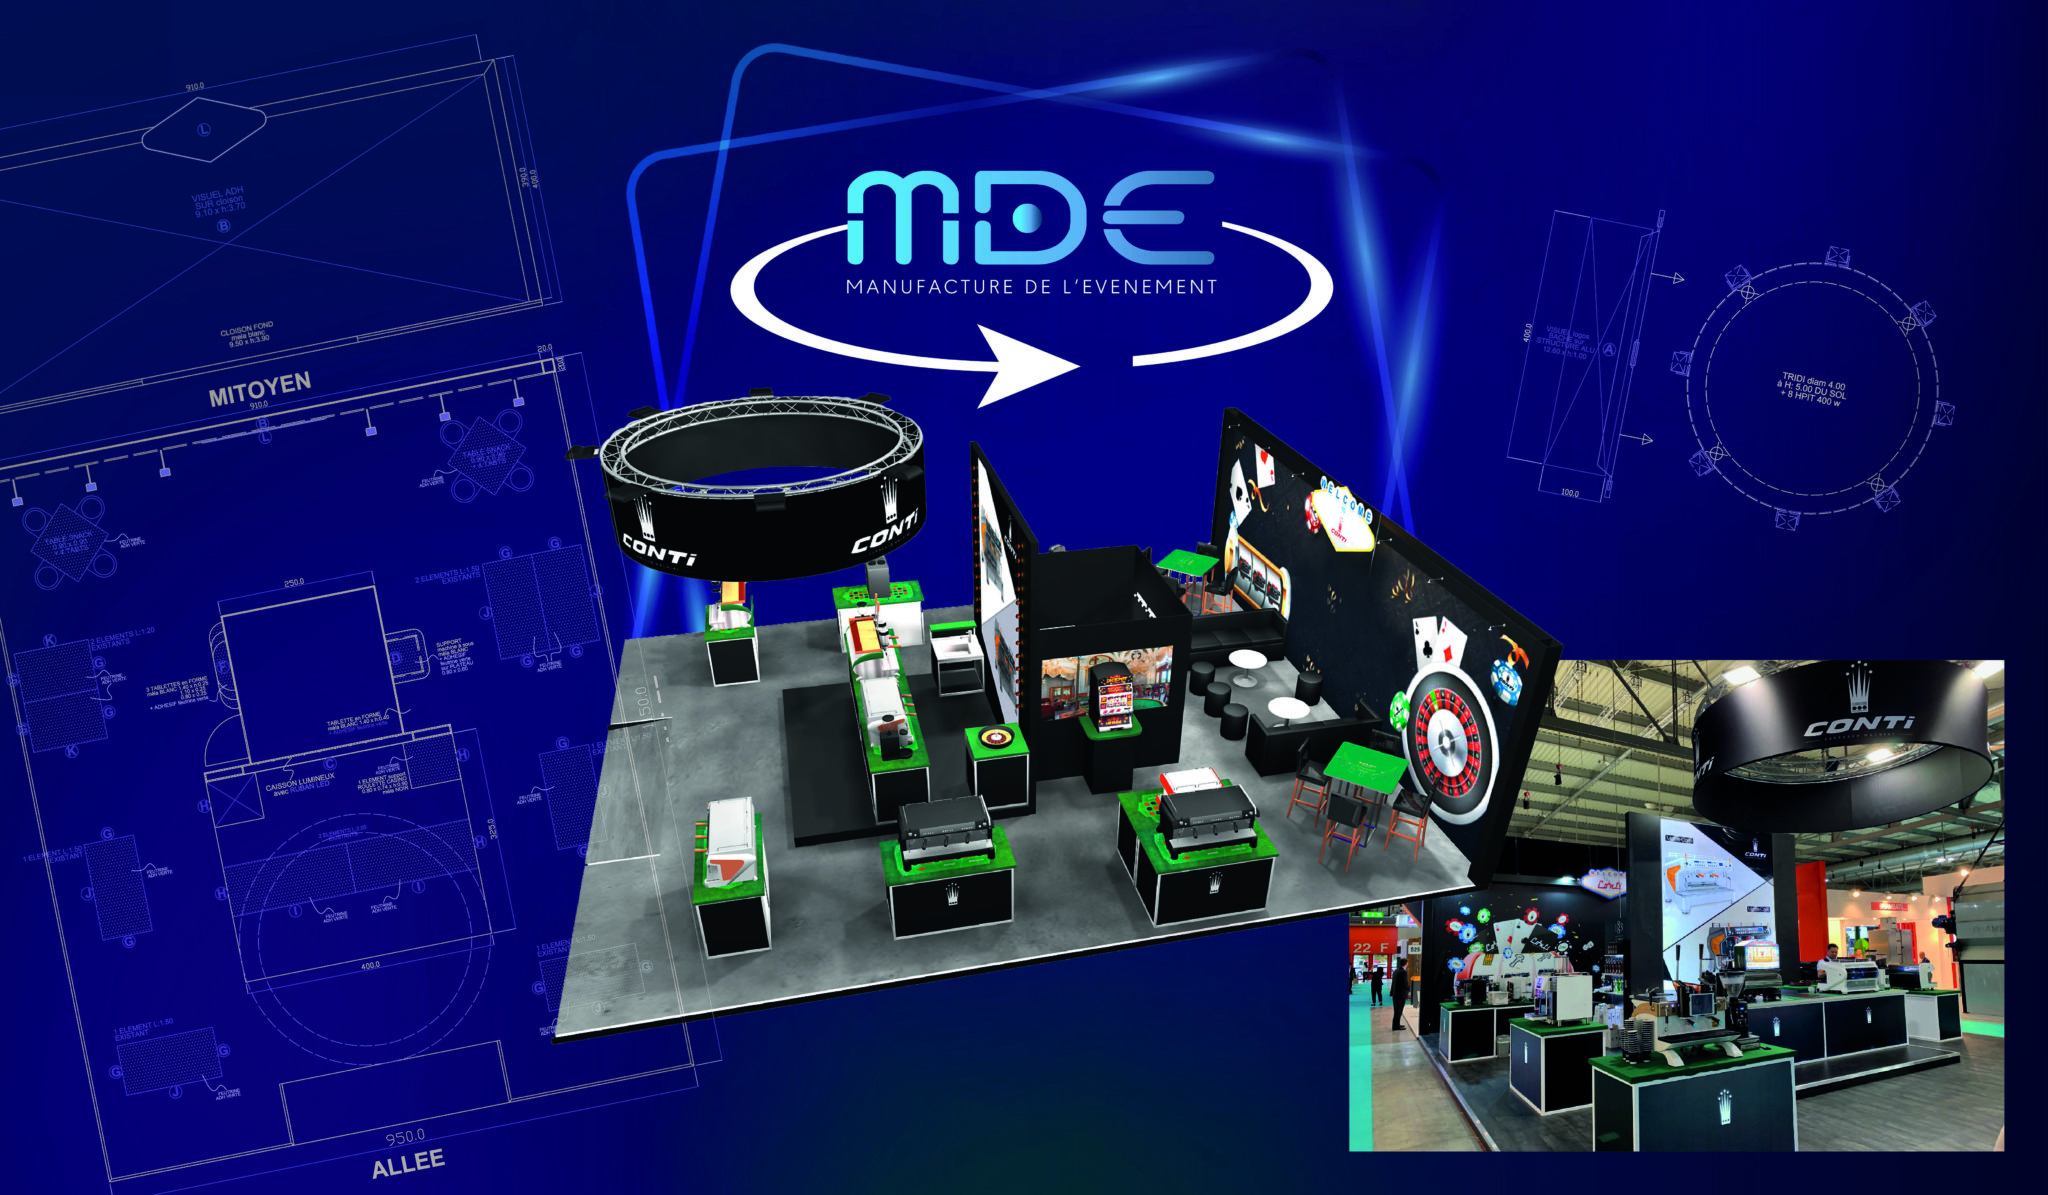 Mde-agence-360-design-stand